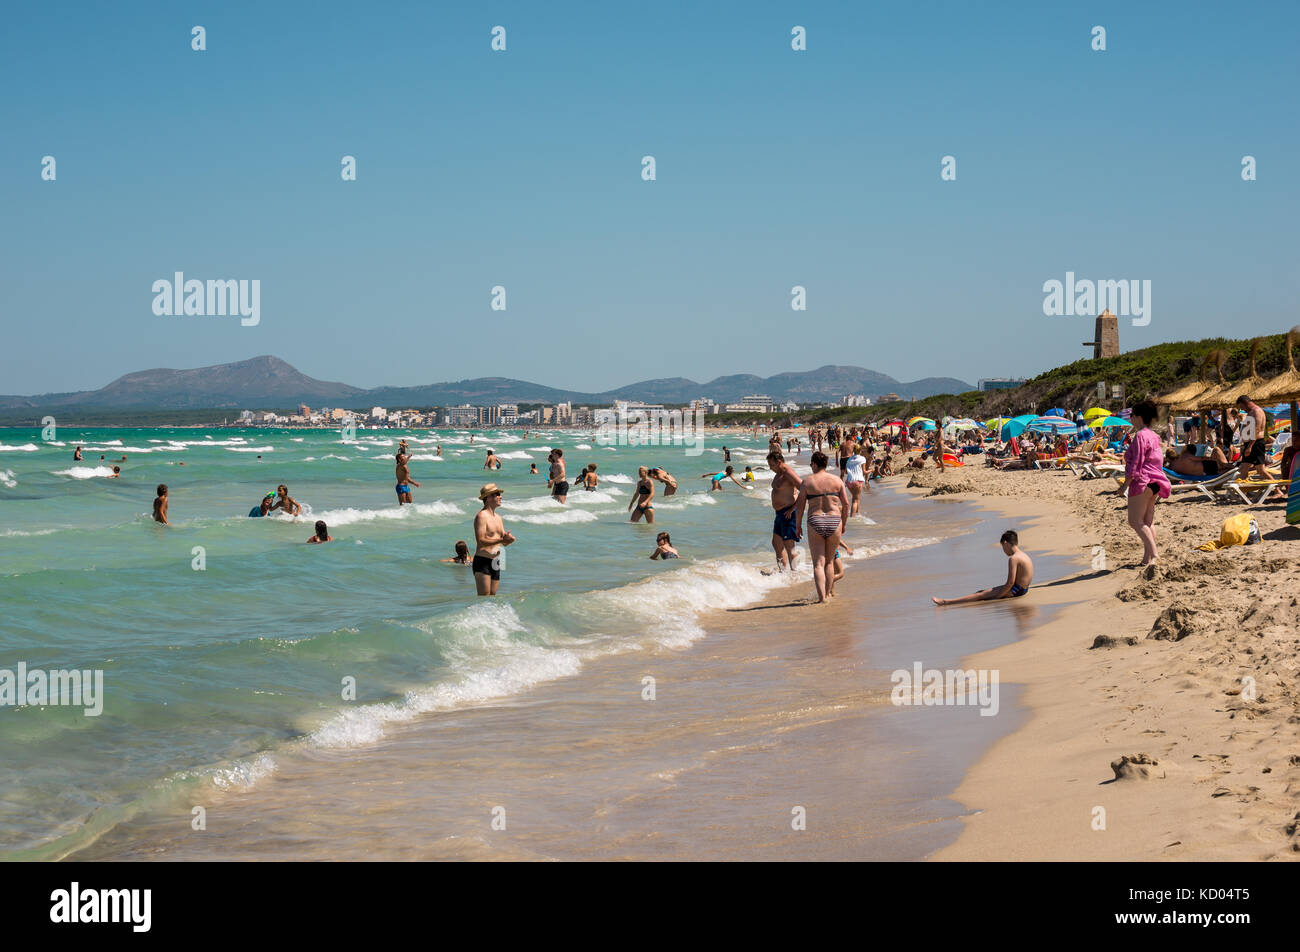 Tourists in Playa de Muro beach with Can Picafort town and mountains in background, northern part of Majorca island - Stock Image